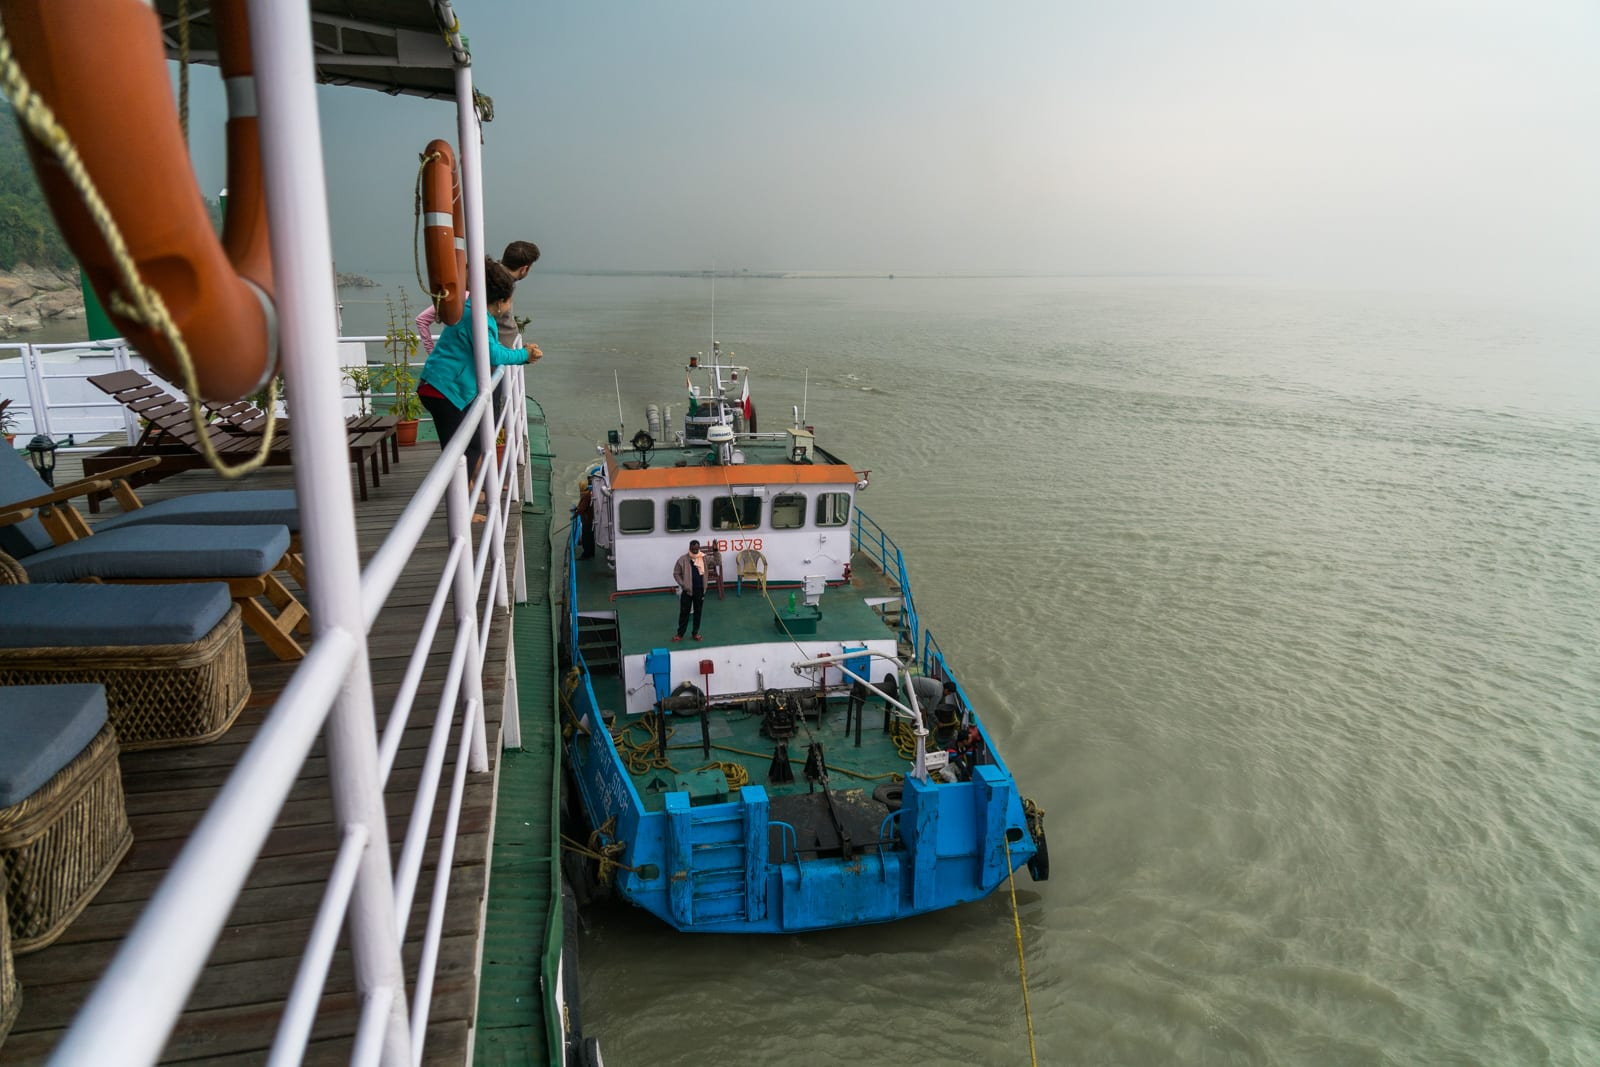 Review of a river cruise on the Brahmaputra with Assam Bengal Navigation - Tugboat pushing the cruise boat - Lost With Purpose travel blog